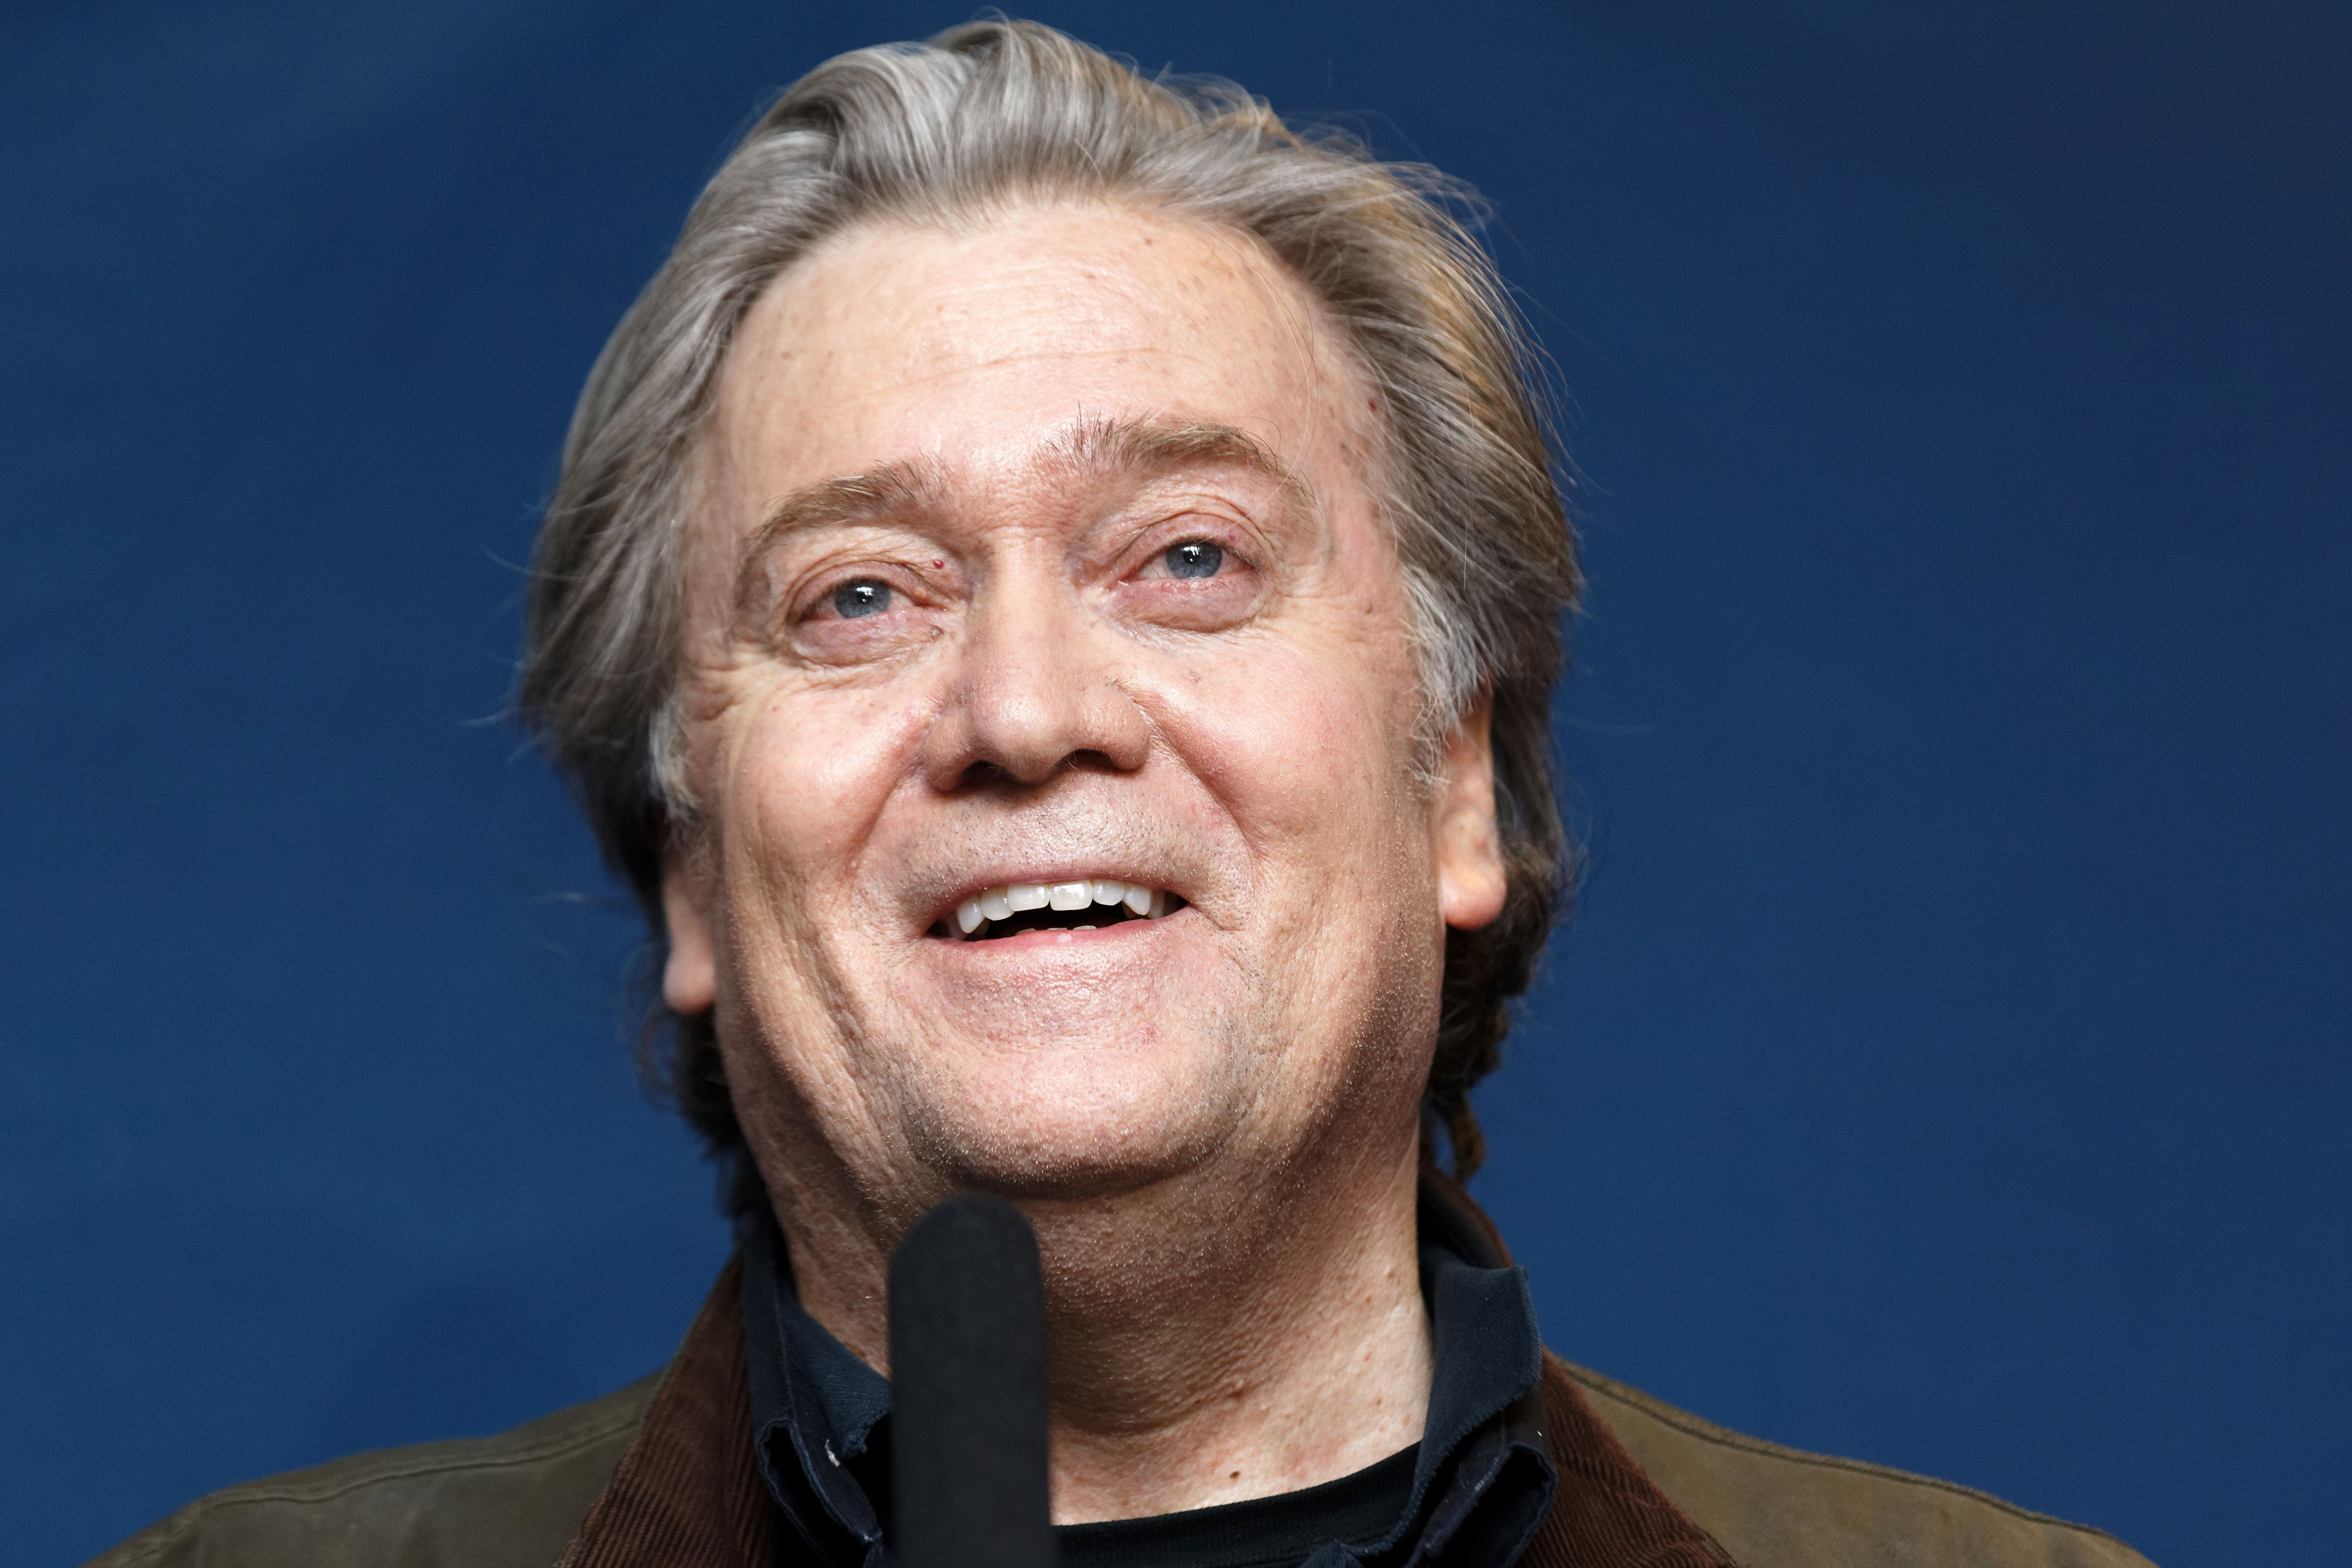 LILLE, FRANCE - MARCH 10:  Former US President advisor Steve Bannon gives a press conference during the French far-right Front National (FN) party annual congress on March 10, 2018 at the Grand Palais in Lille, north of France. Le Pen will attempt to revive her battered party this weekend at a conference with a proposal to ditch the tainted National Front brand, seen as a key hurdle to winning power. on March 10, 2018 in Lille, France.  (Photo by Sylvain Lefevre/Getty Images)